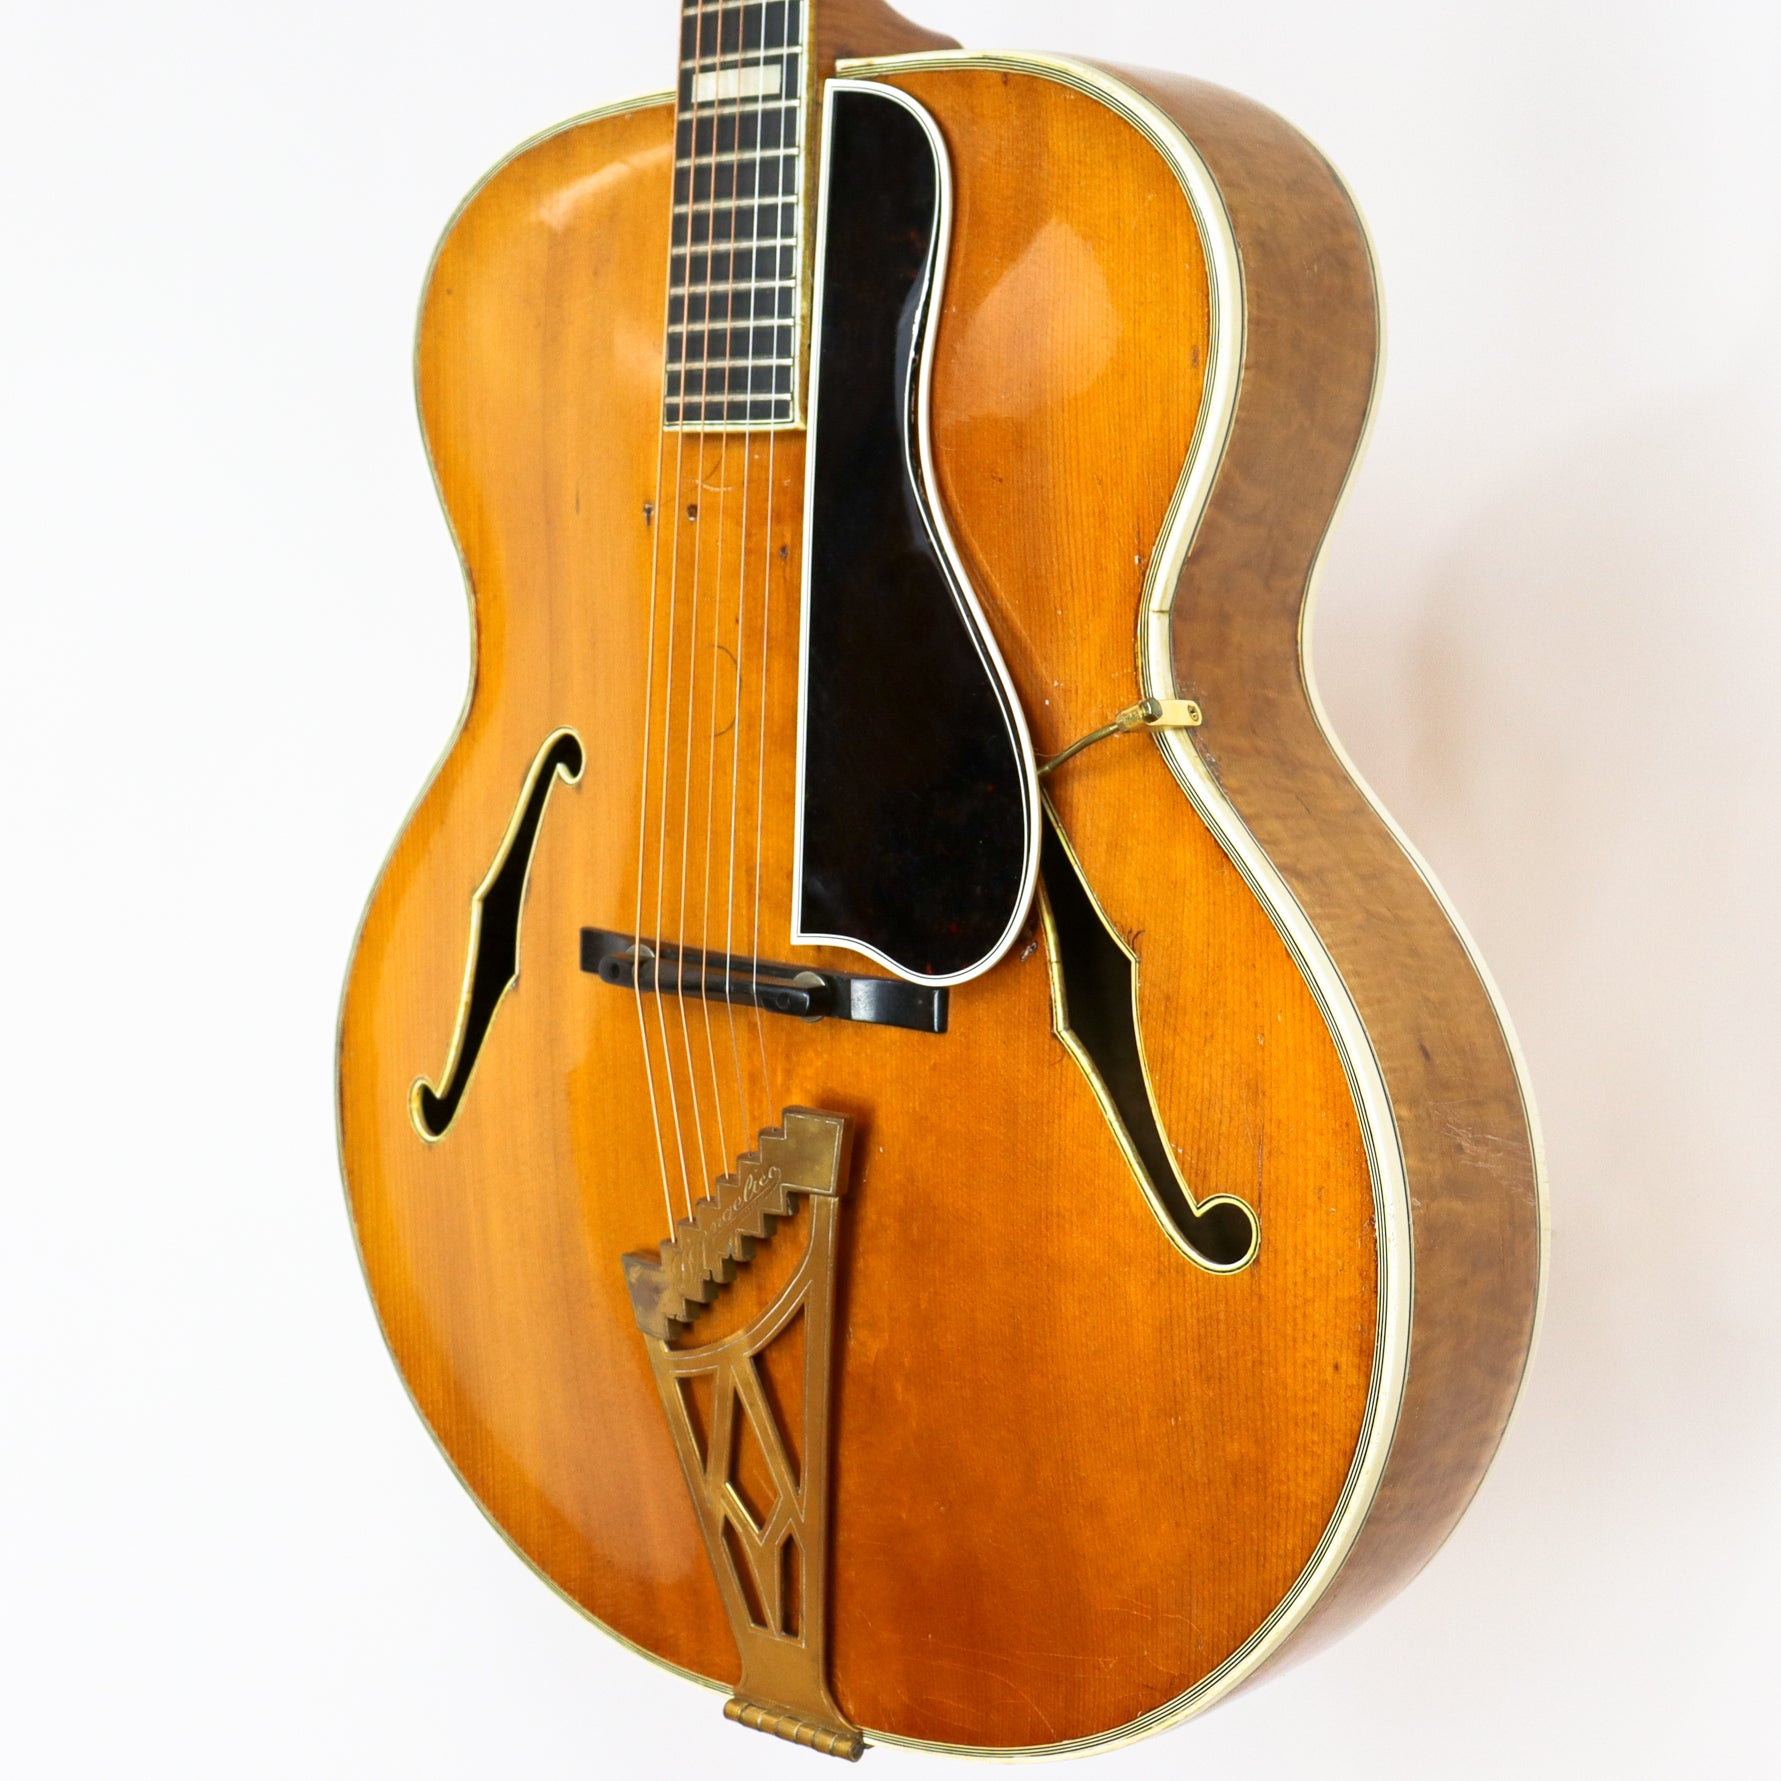 "D'Angelico 1950 New Yorker Blonde 18"" SN# 1840 with Hardshell Case"